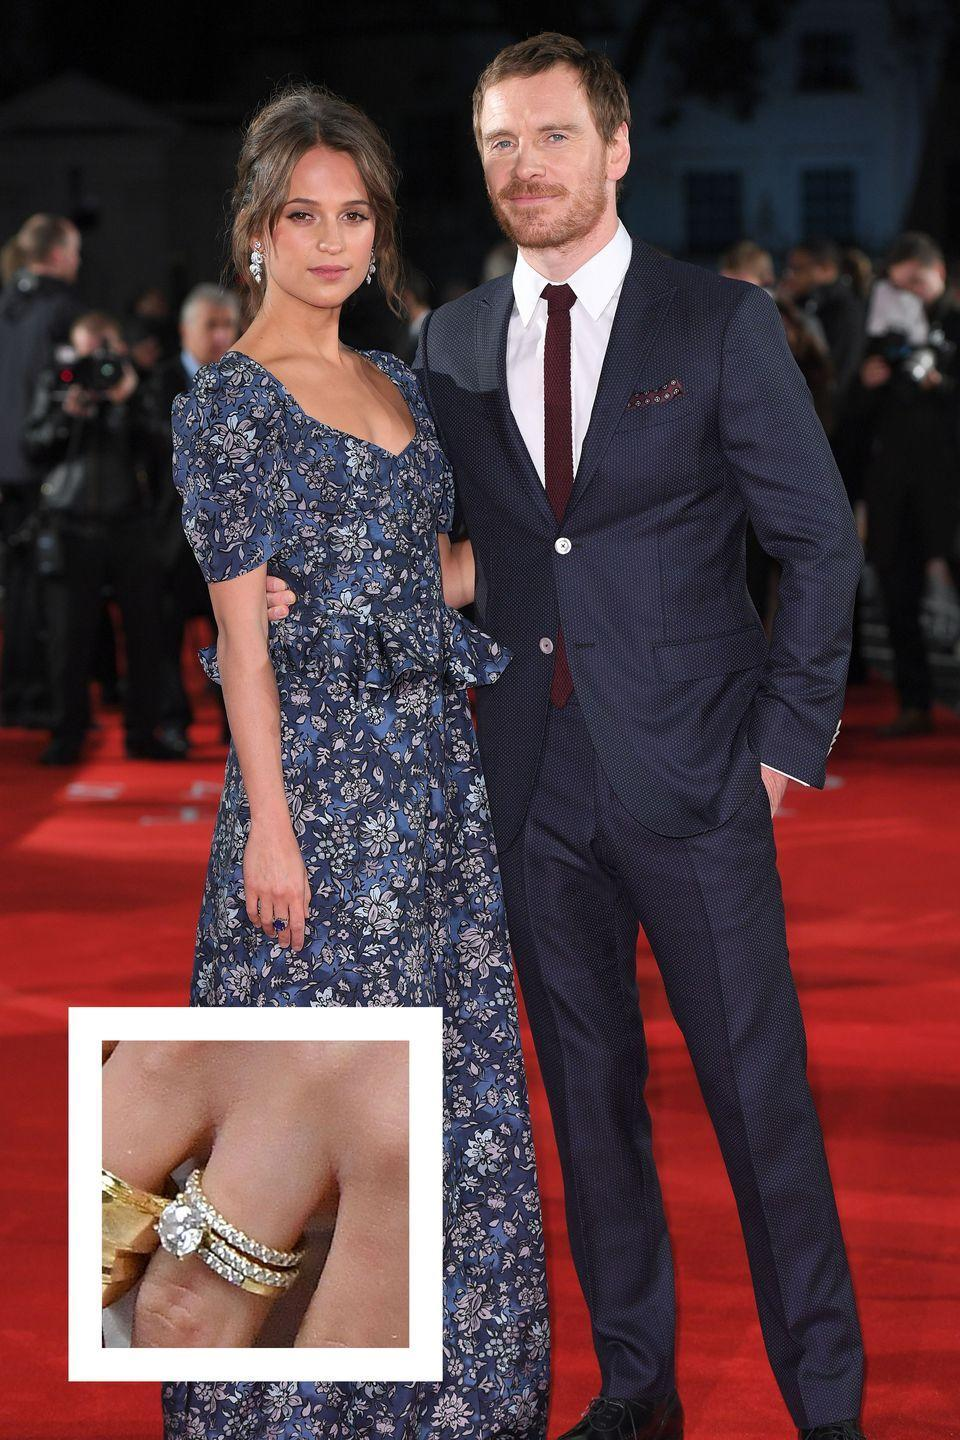 """<p>Vikander and Michael Fassbender wed in a secret ceremony in in Ibiza back in October 2017. A few weeks later, Vikander subtly debuted her engagement and wedding rings on the red carpet. Her ring is a solitaire diamond on a yellow gold pavé band with matching diamond eternity bands on each side, <a href=""""https://www.elle.com.au/celebrity/alicia-vikander-engagement-ring-14803"""" rel=""""nofollow noopener"""" target=""""_blank"""" data-ylk=""""slk:Elle Australia reports."""" class=""""link rapid-noclick-resp""""><em>Elle Australia </em>reports.</a></p>"""